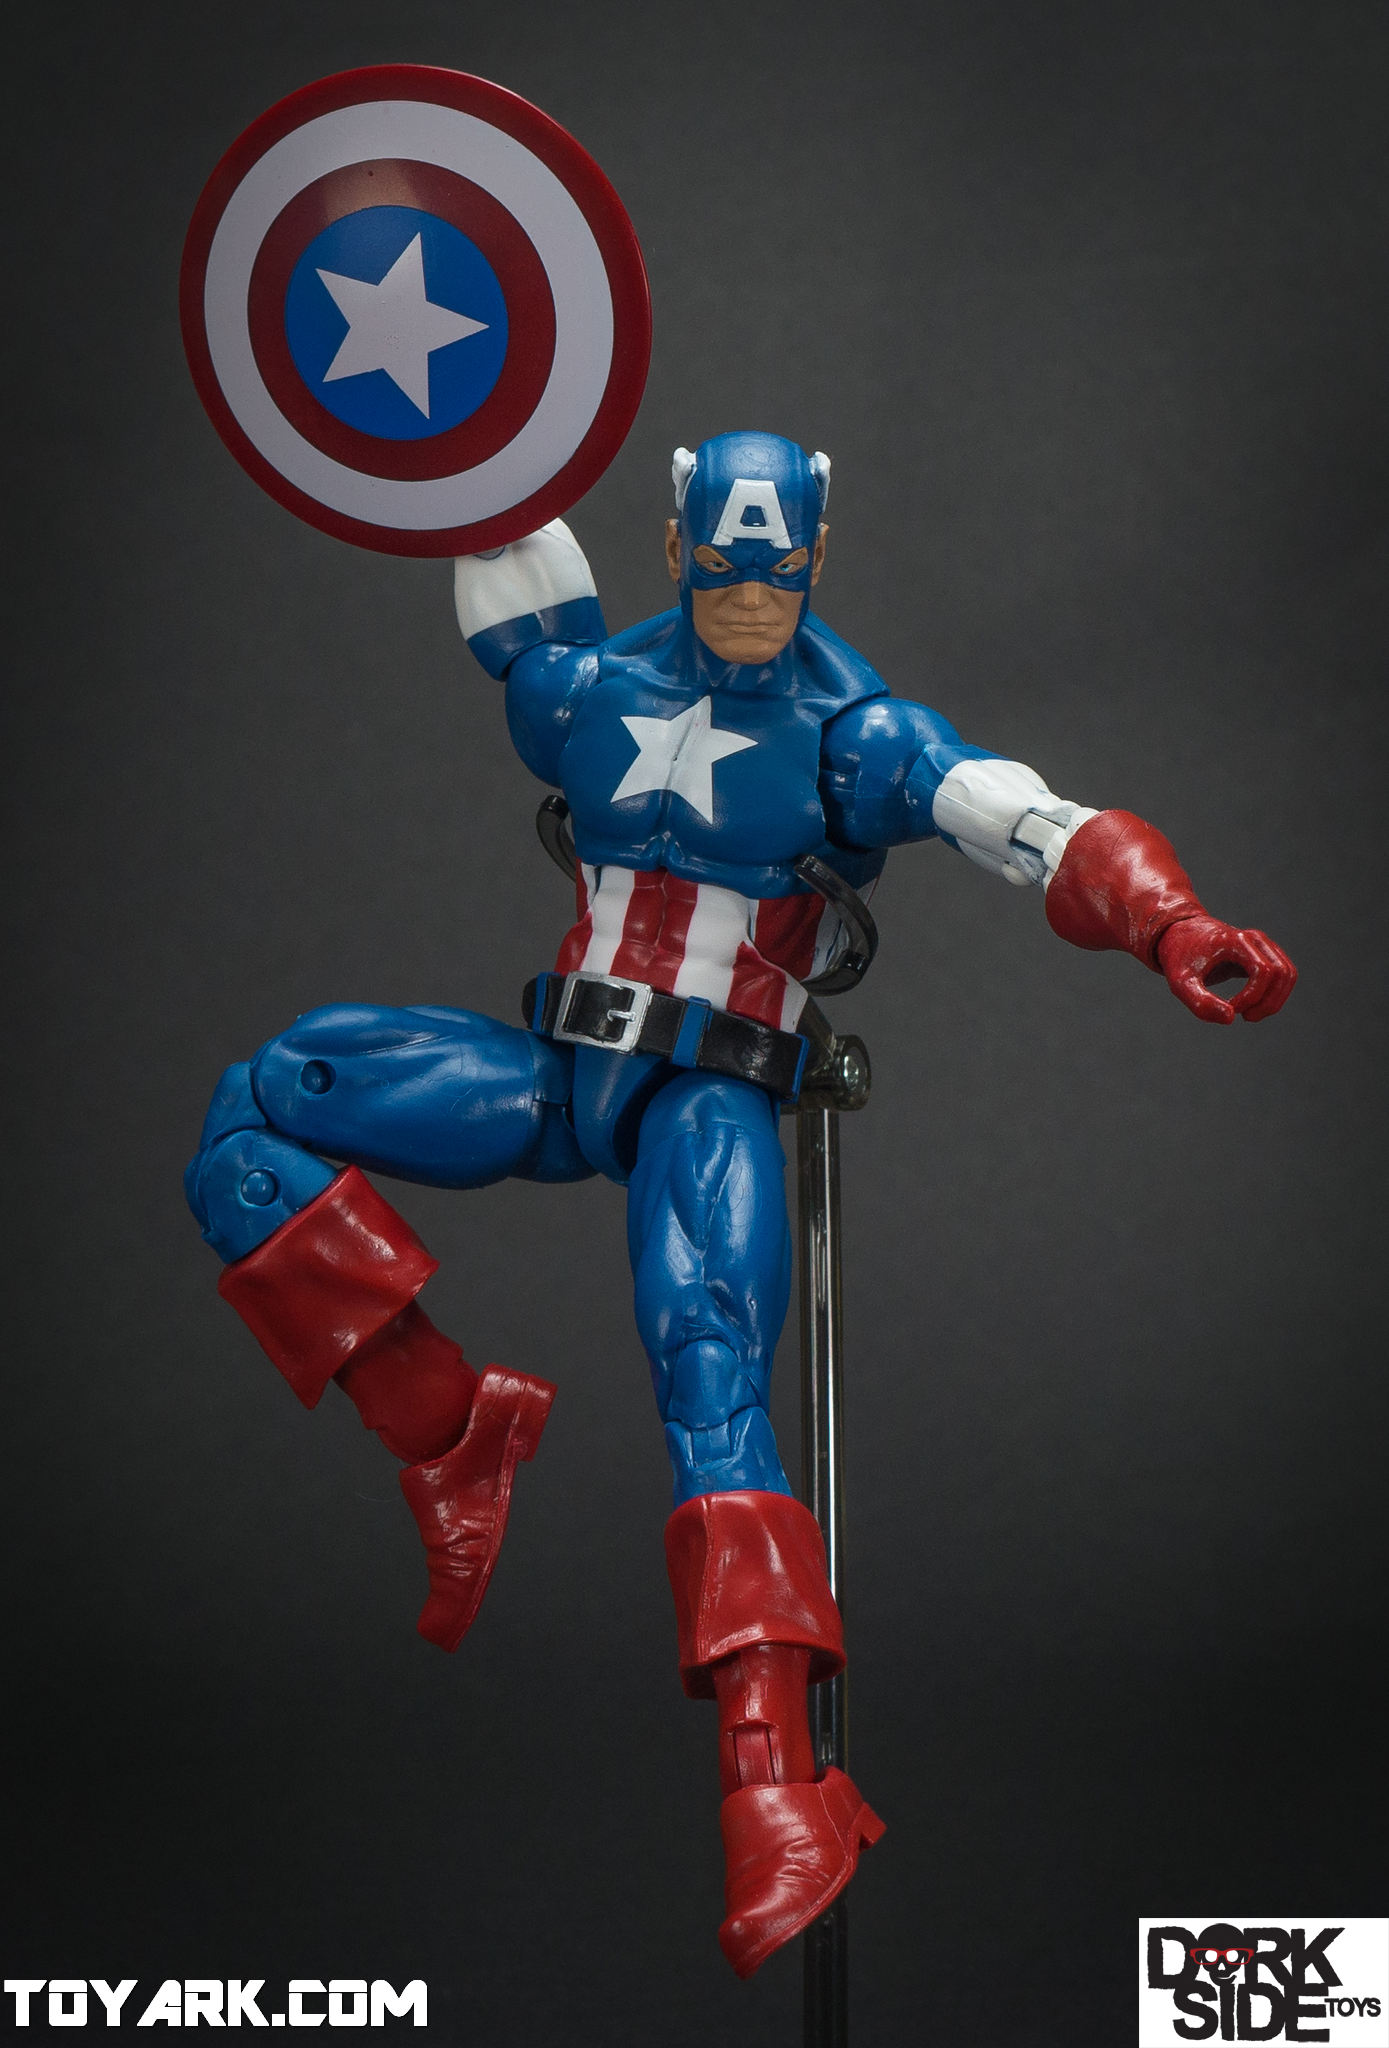 marvel legends civil war captain america photo shoot the toyark news. Black Bedroom Furniture Sets. Home Design Ideas